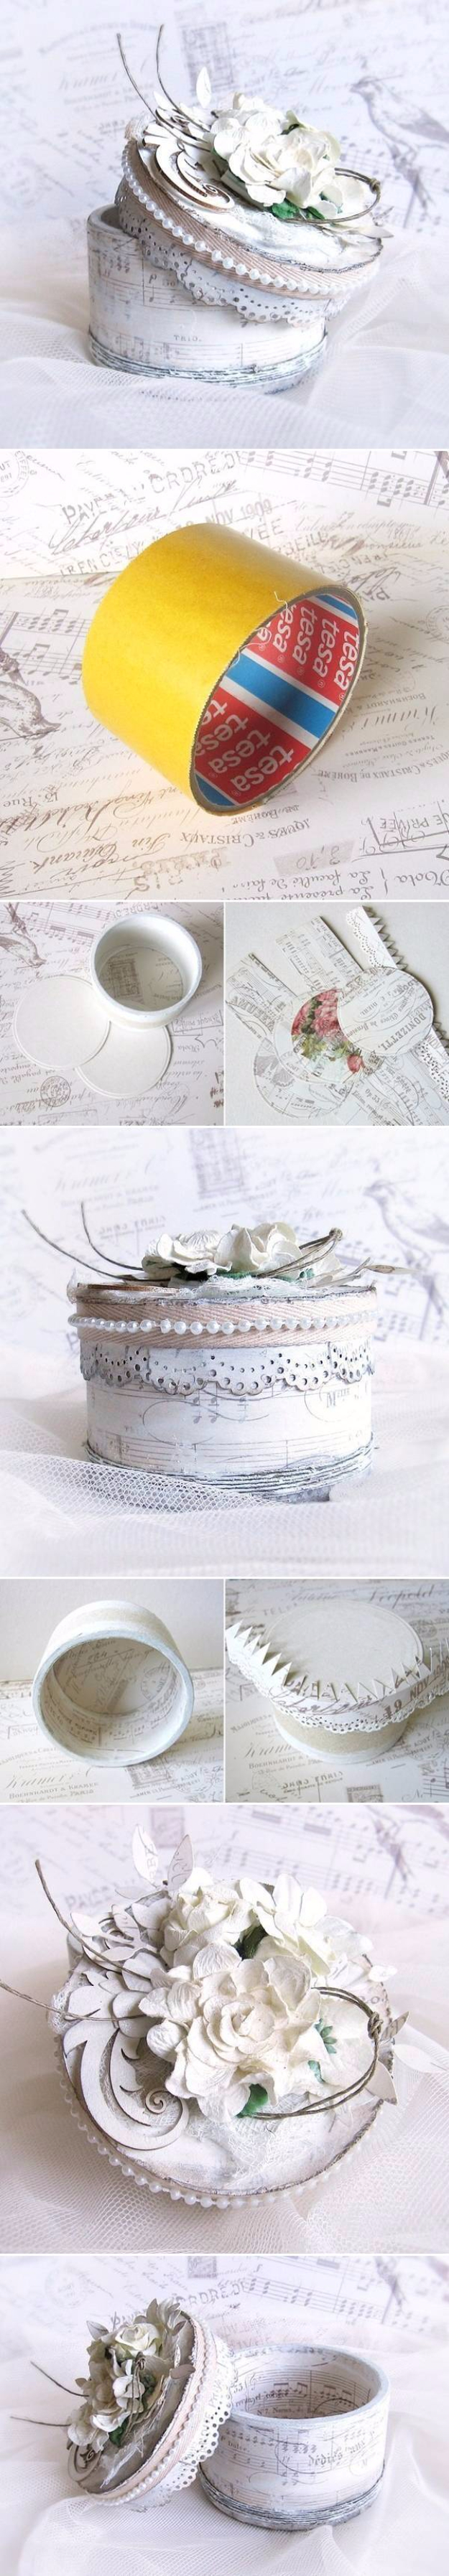 Shabby Chic Decor and Bedding Ideas - DIY Tape Roll Jewelry Box - Rustic and Romantic Vintage Bedroom, Living Room and Kitchen Country Cottage Furniture and Home Decor Ideas. Step by Step Tutorials and Instructions http://diyjoy.com/diy-shabby-chic-decor-bedding